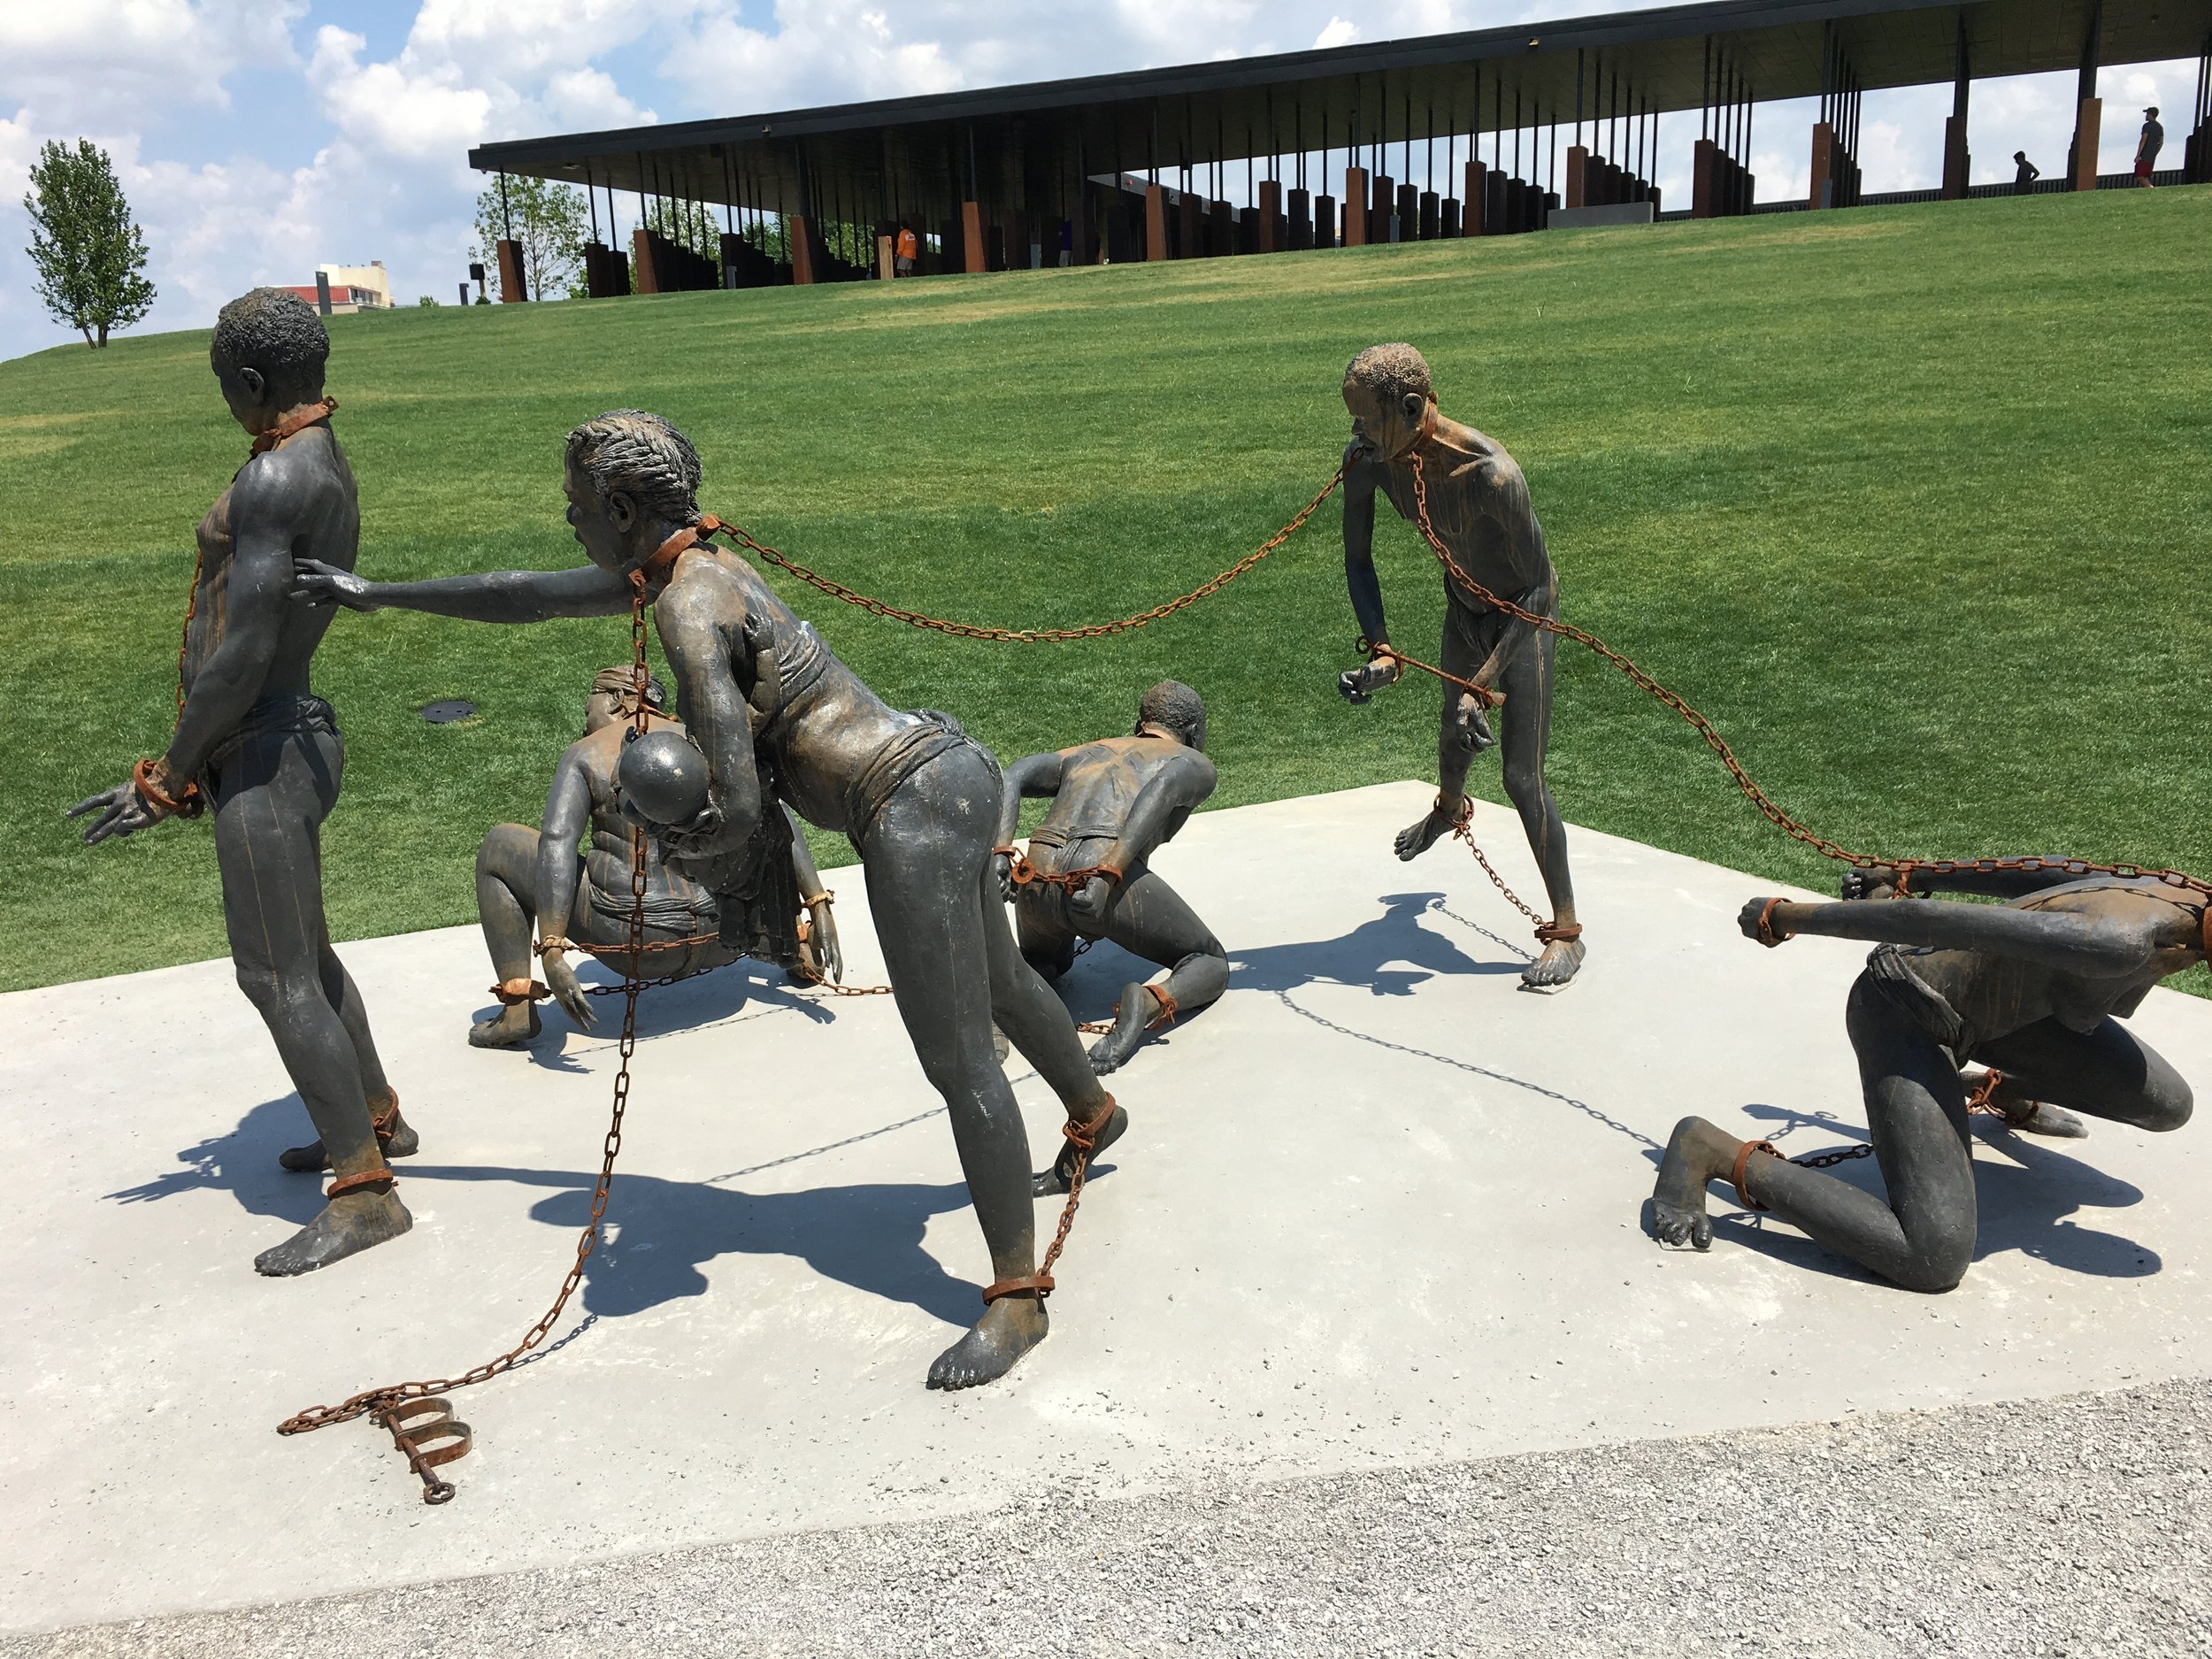 As we walked up to the Memorial, we found this sculpture representing family separation disturbingly relevant to current events.